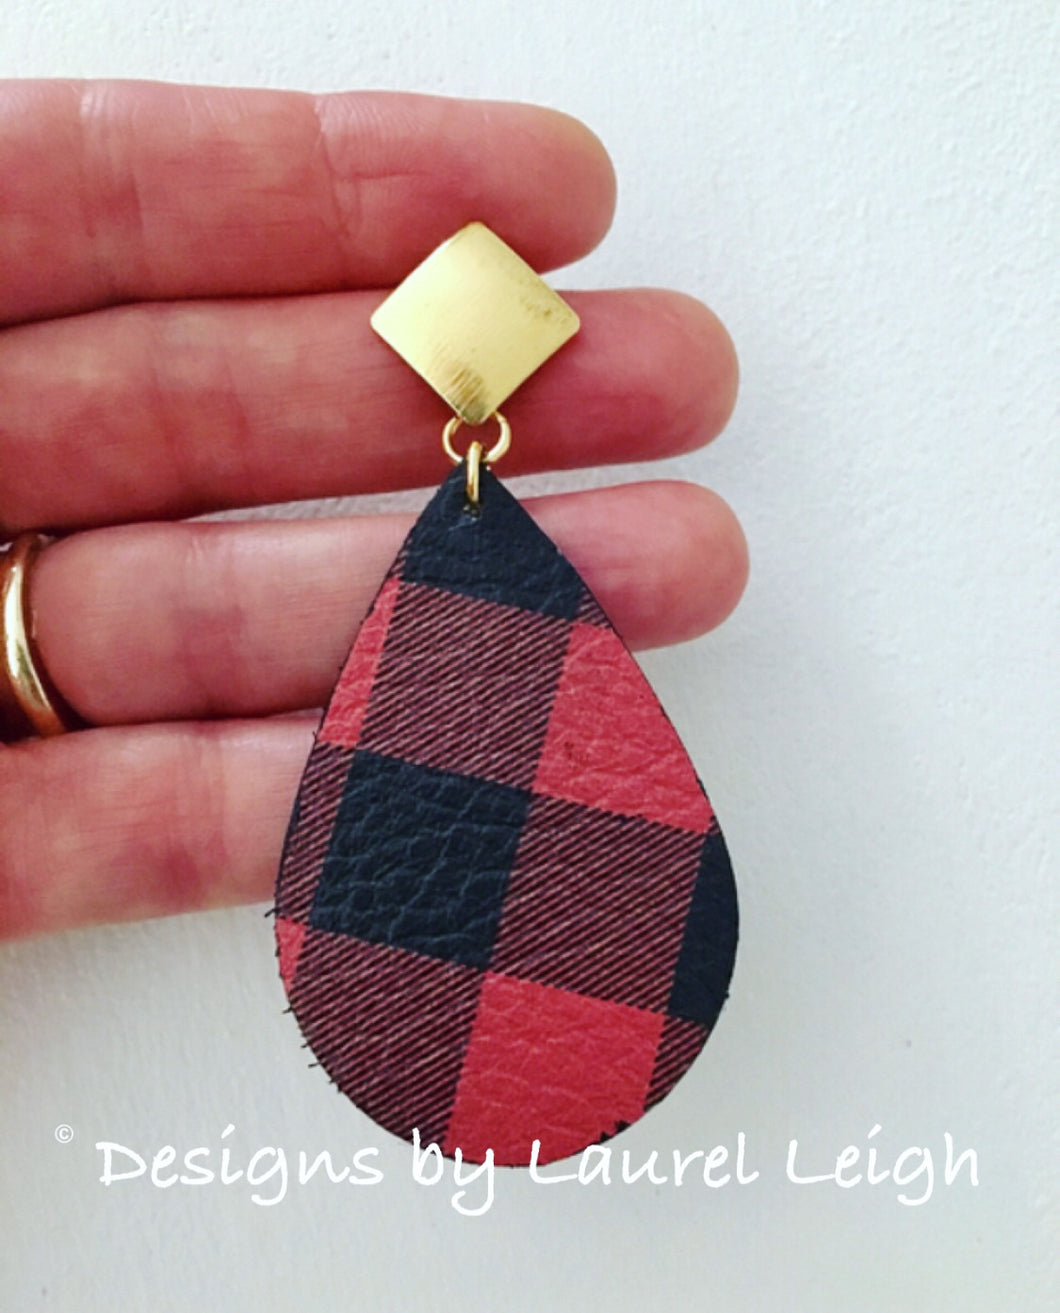 Buffalo Check Plaid Leather Statement Earrings - Red & Black or Black & White - Designs by Laurel Leigh